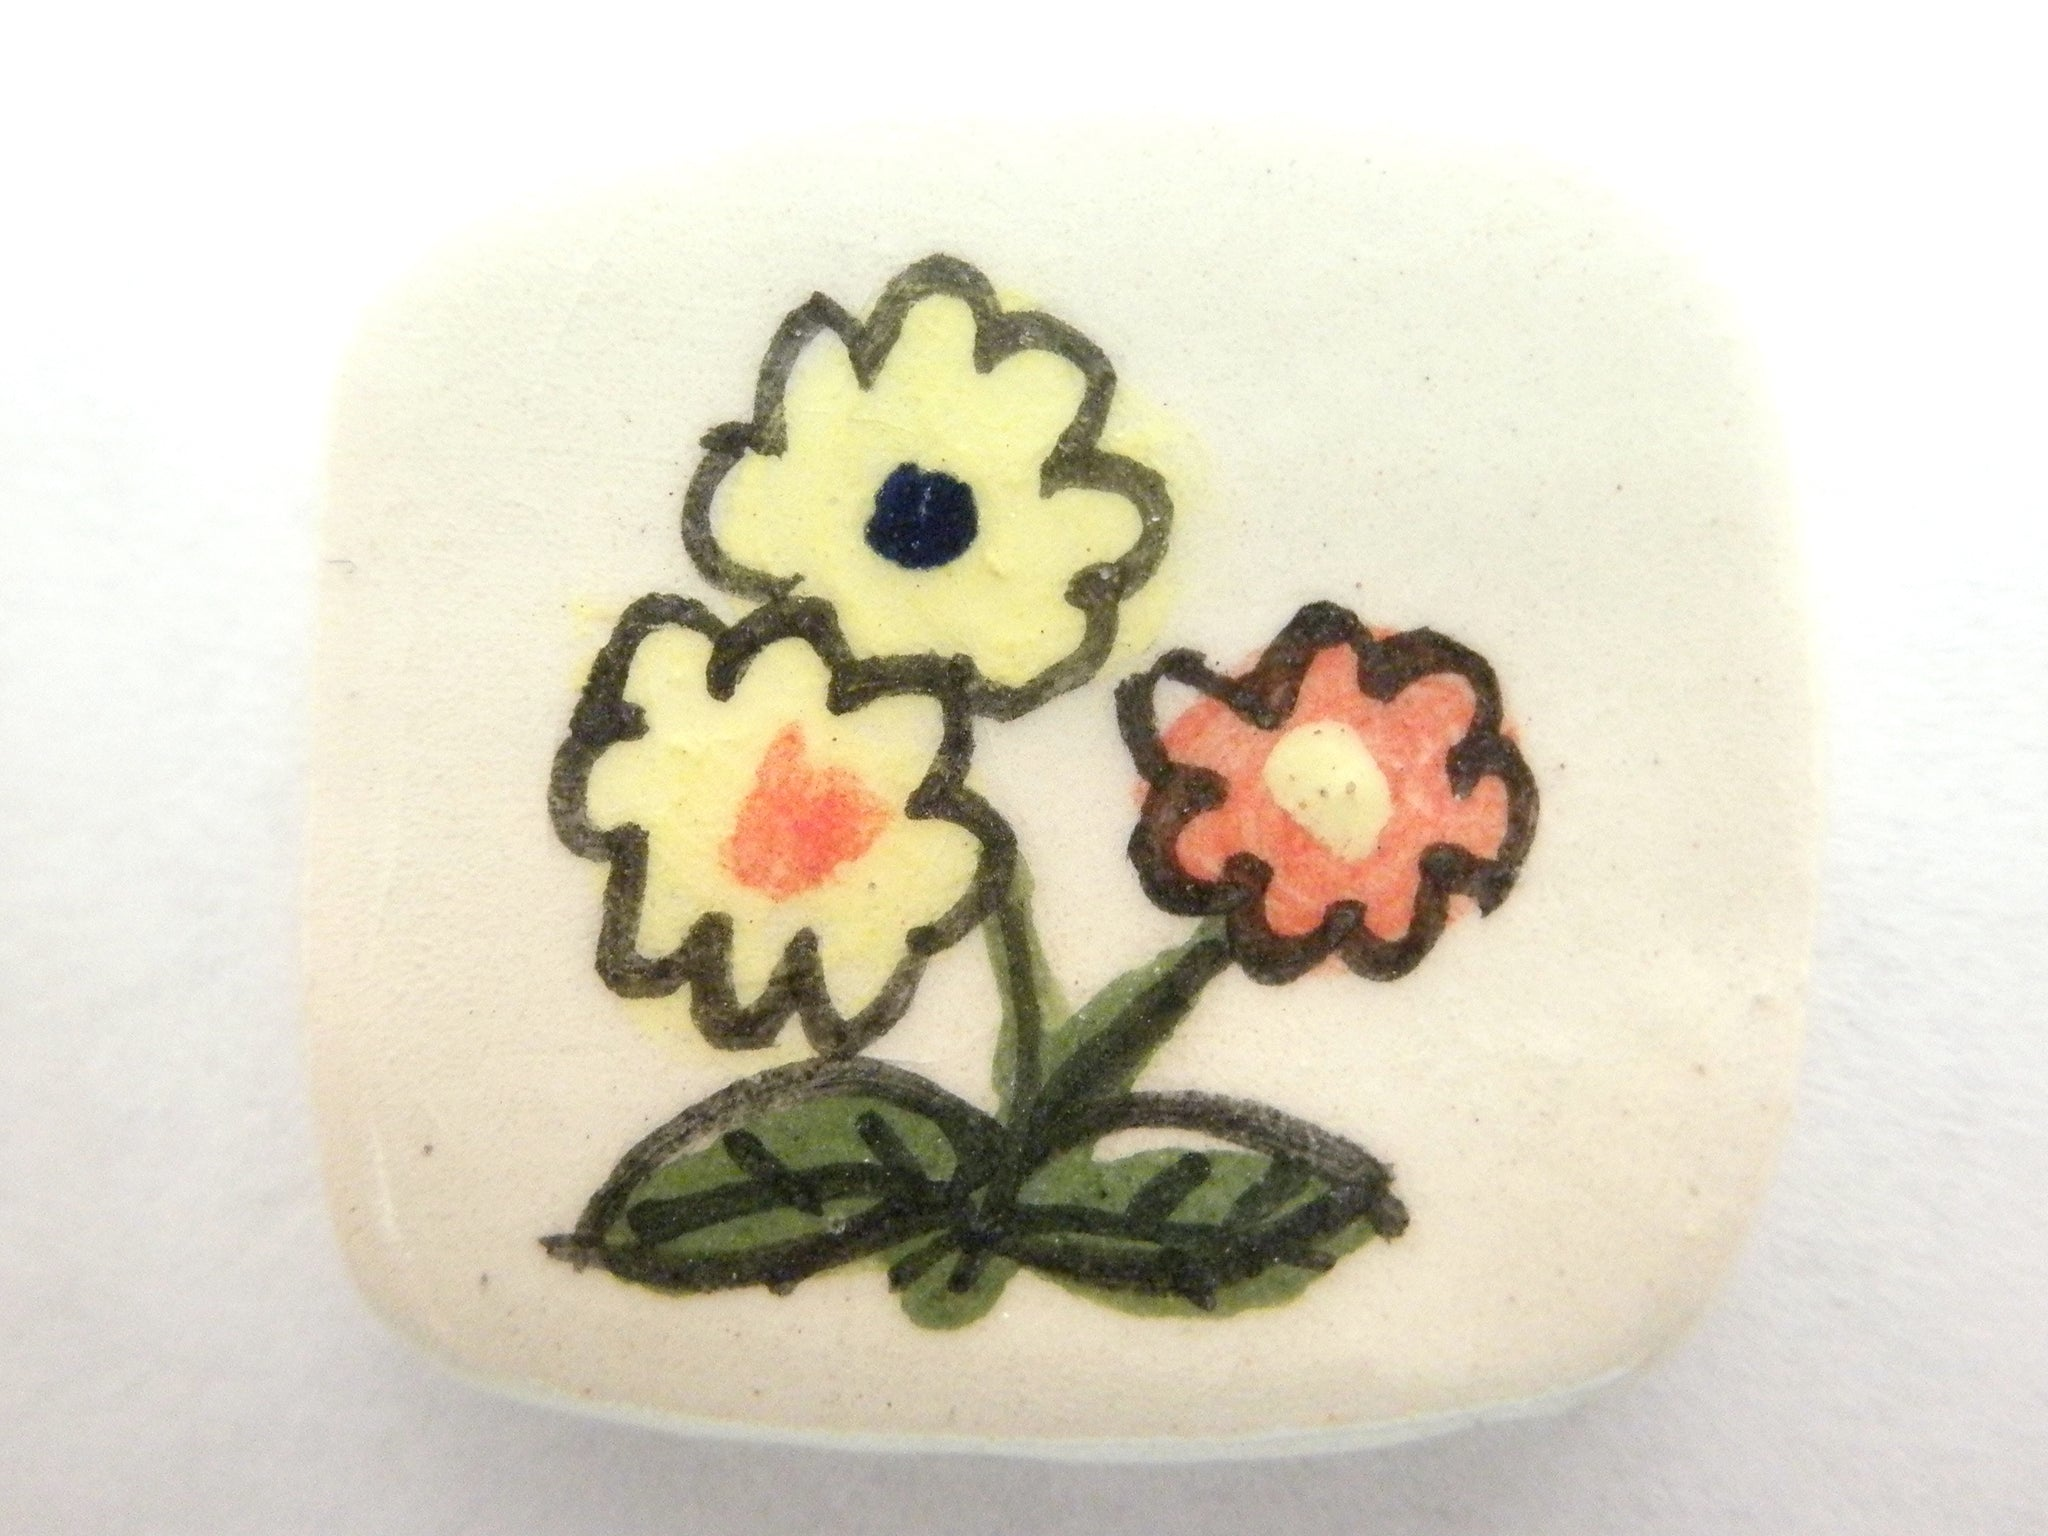 Miniature ceramic plate child's drawing of flowers